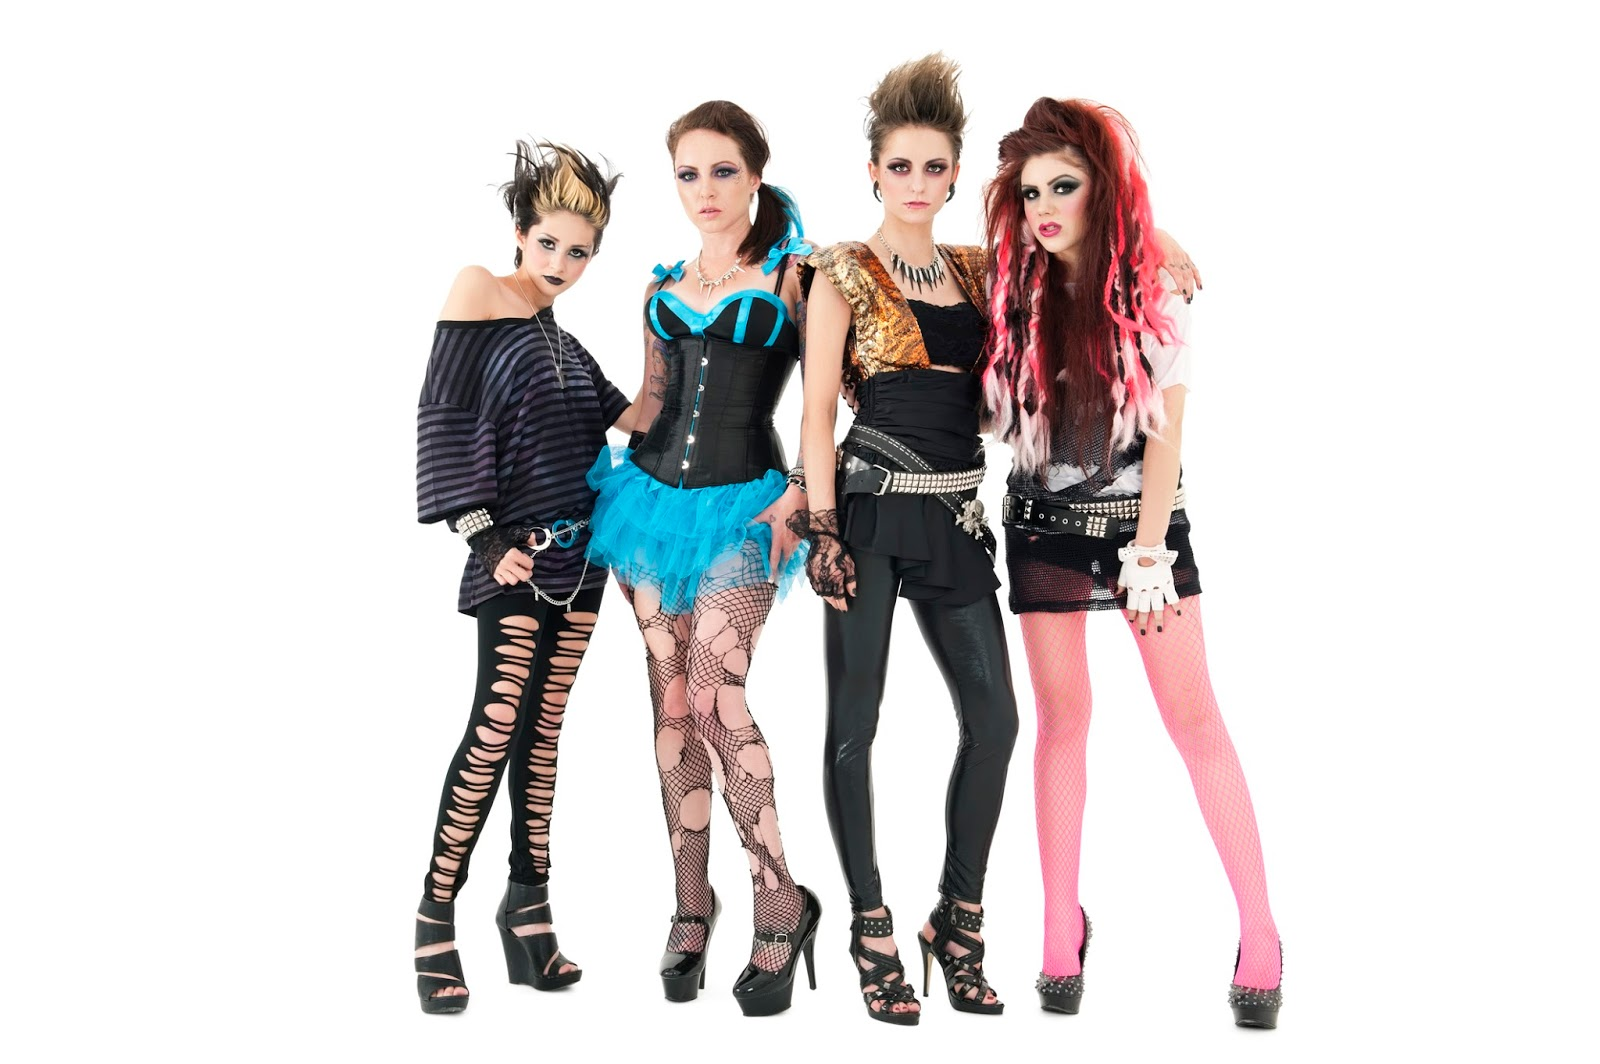 Punk fashion in the 70s 64